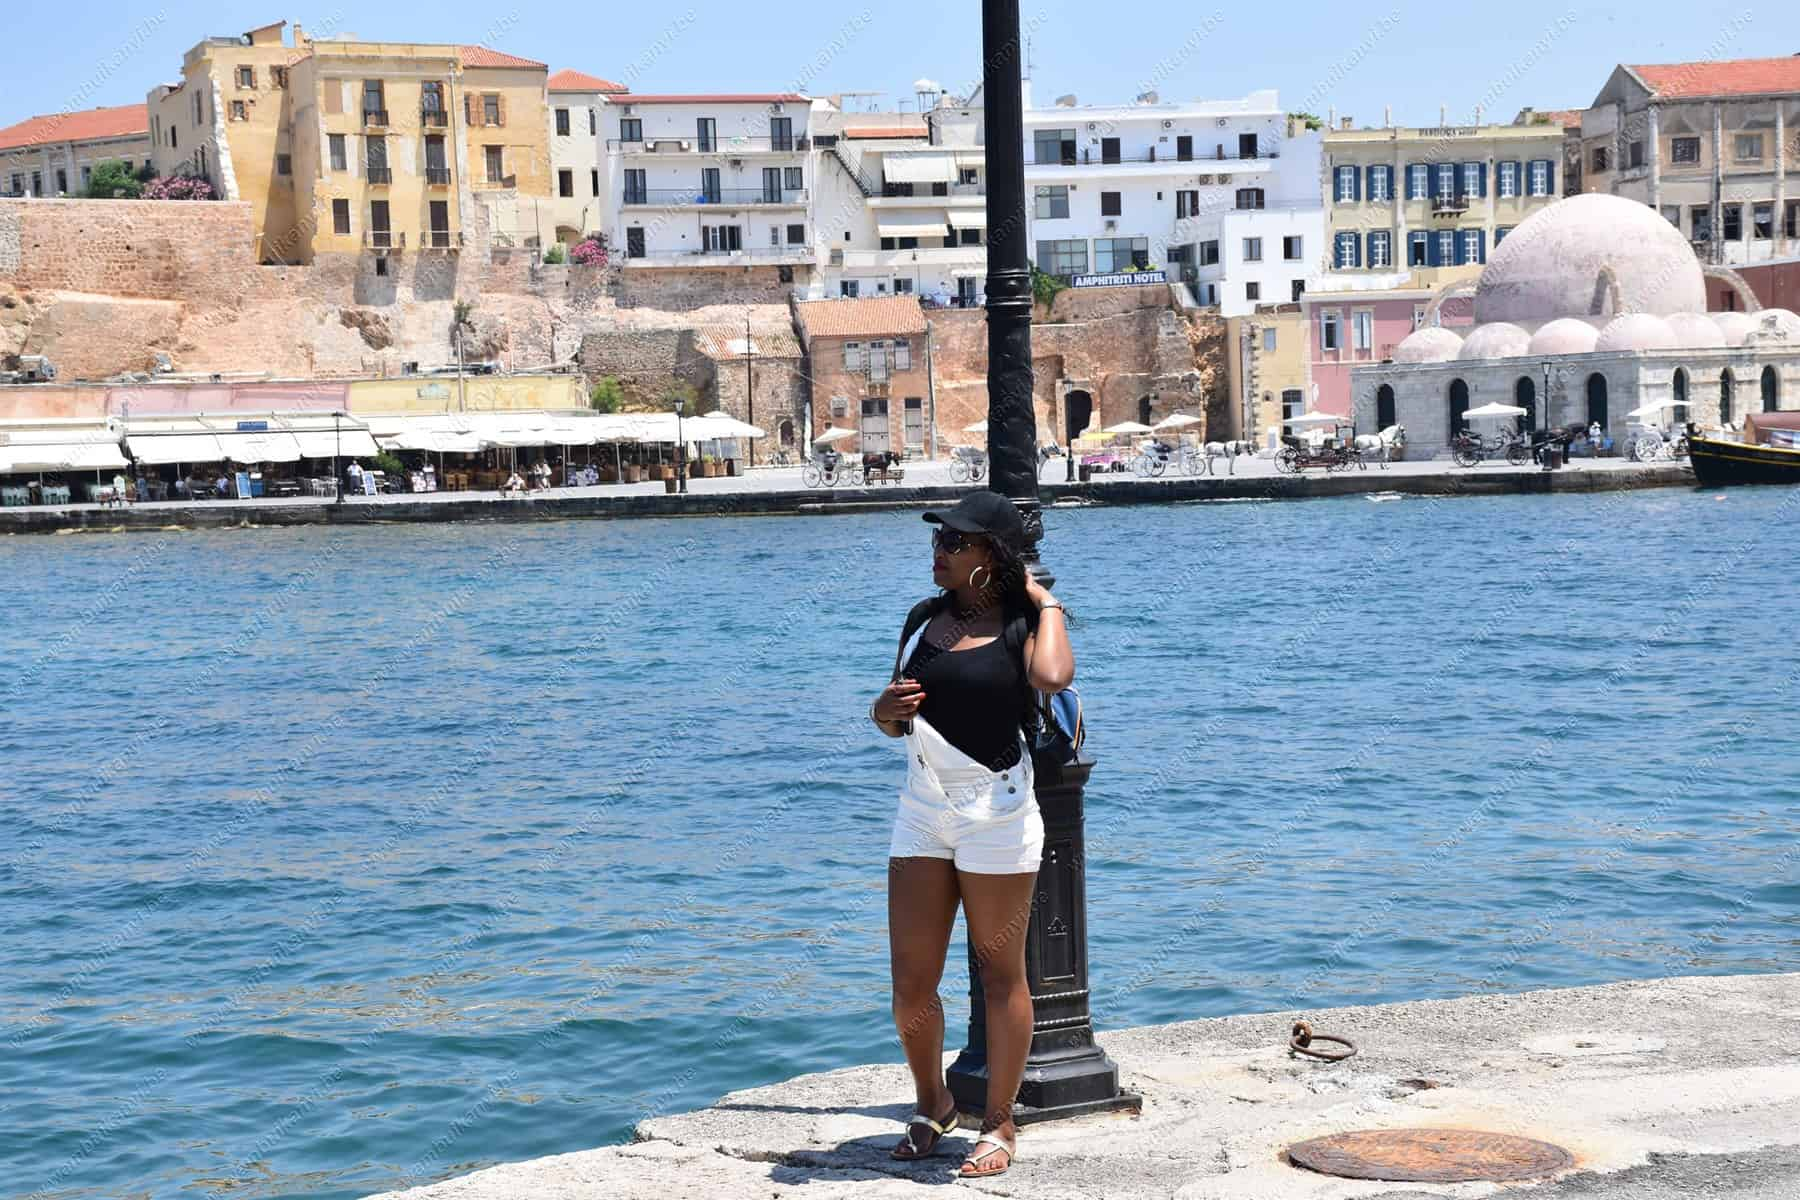 Things to do in Chania, Crete Island